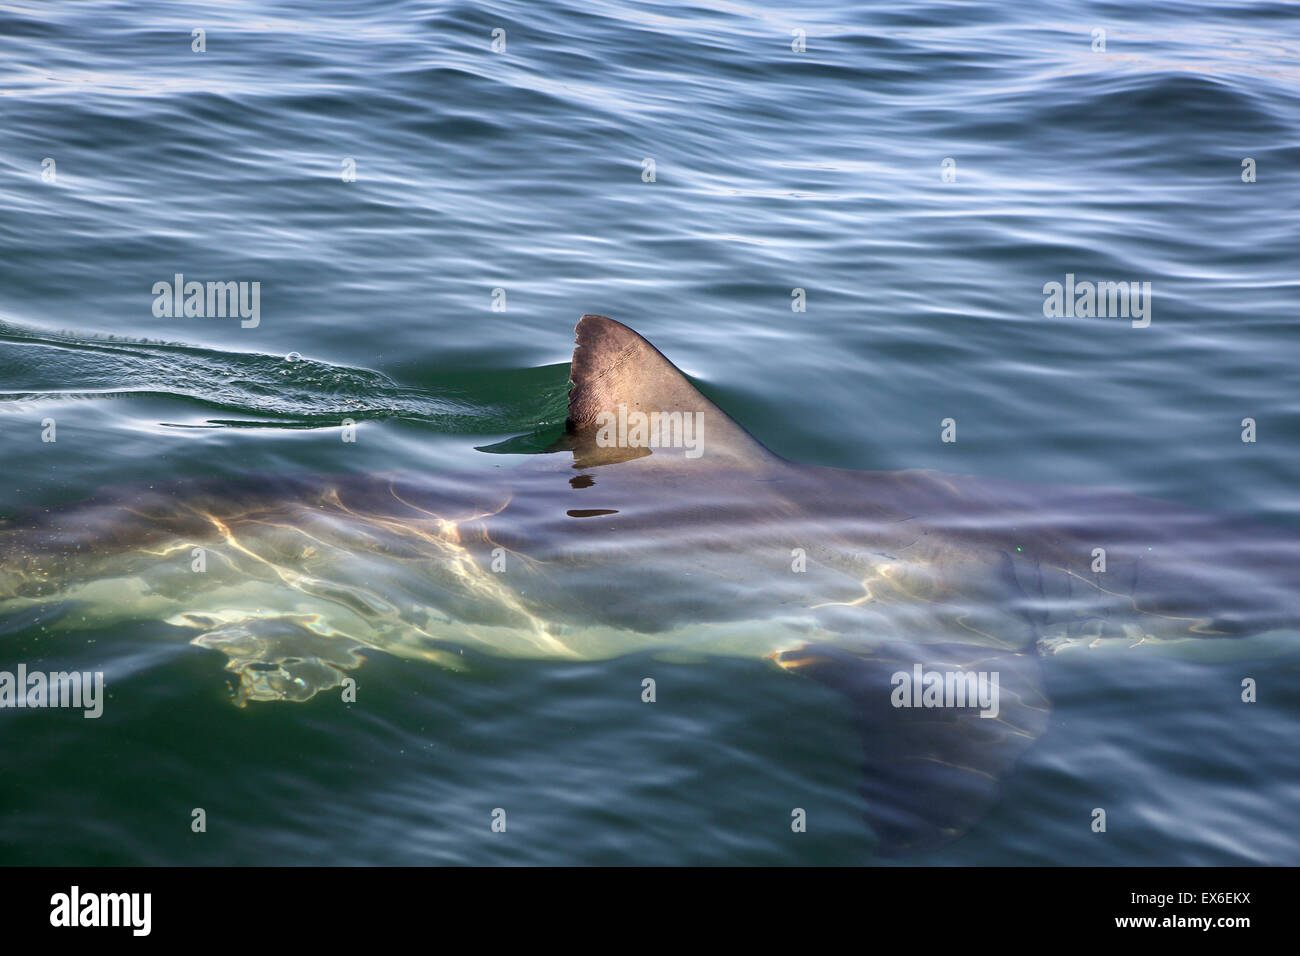 Great white shark (Carcharodon carcharias) dorsal fin - Stock Image